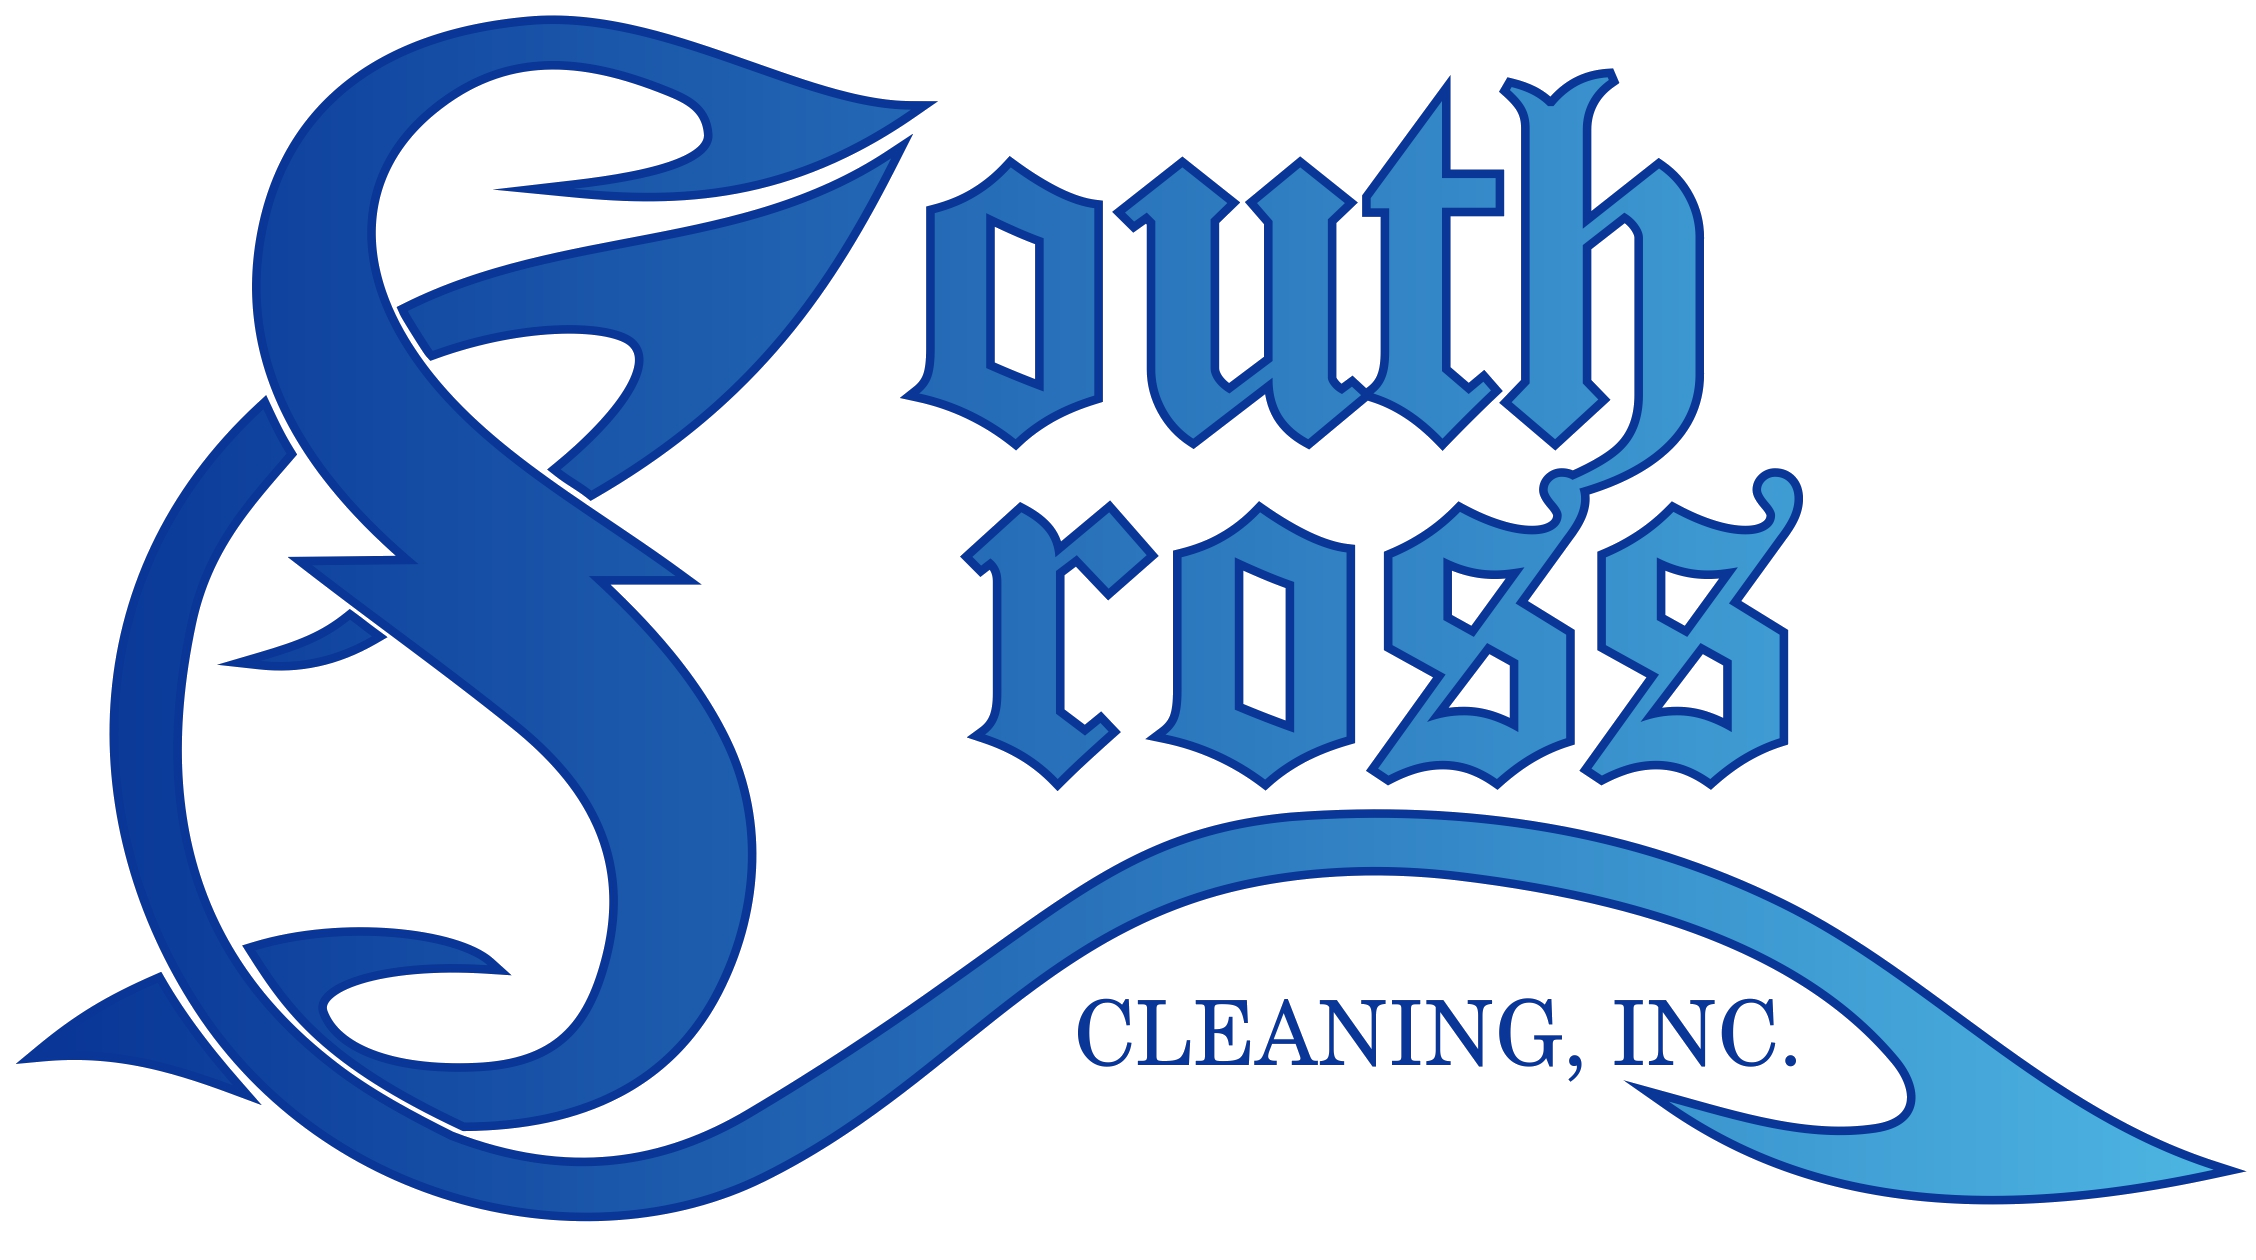 SouthCross Cleaning